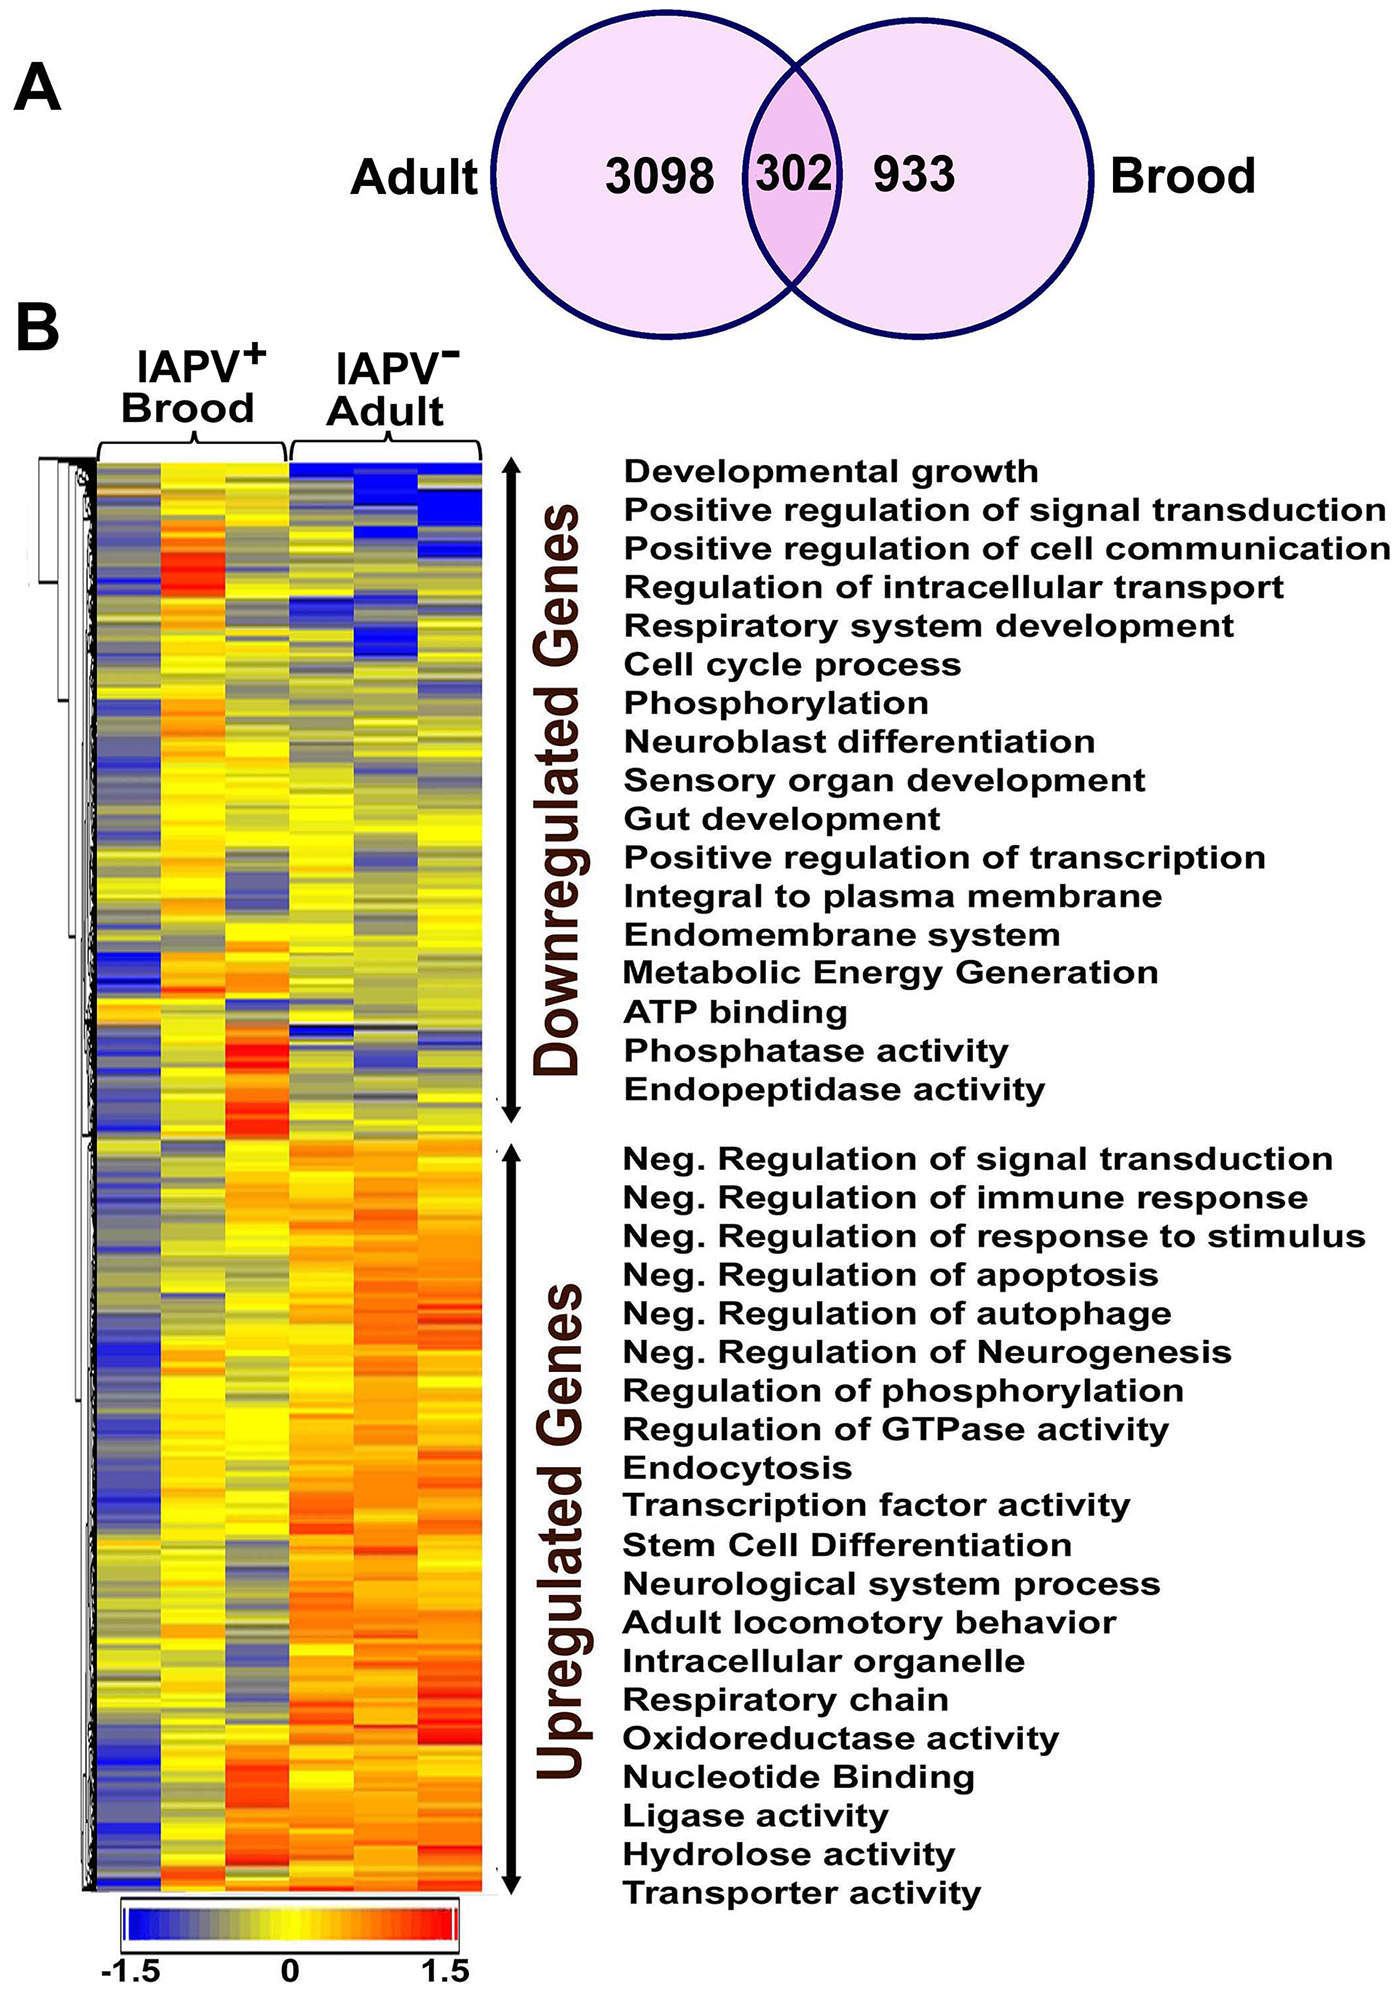 An overview of gene expression profiles in IAPV infected adults and brood.